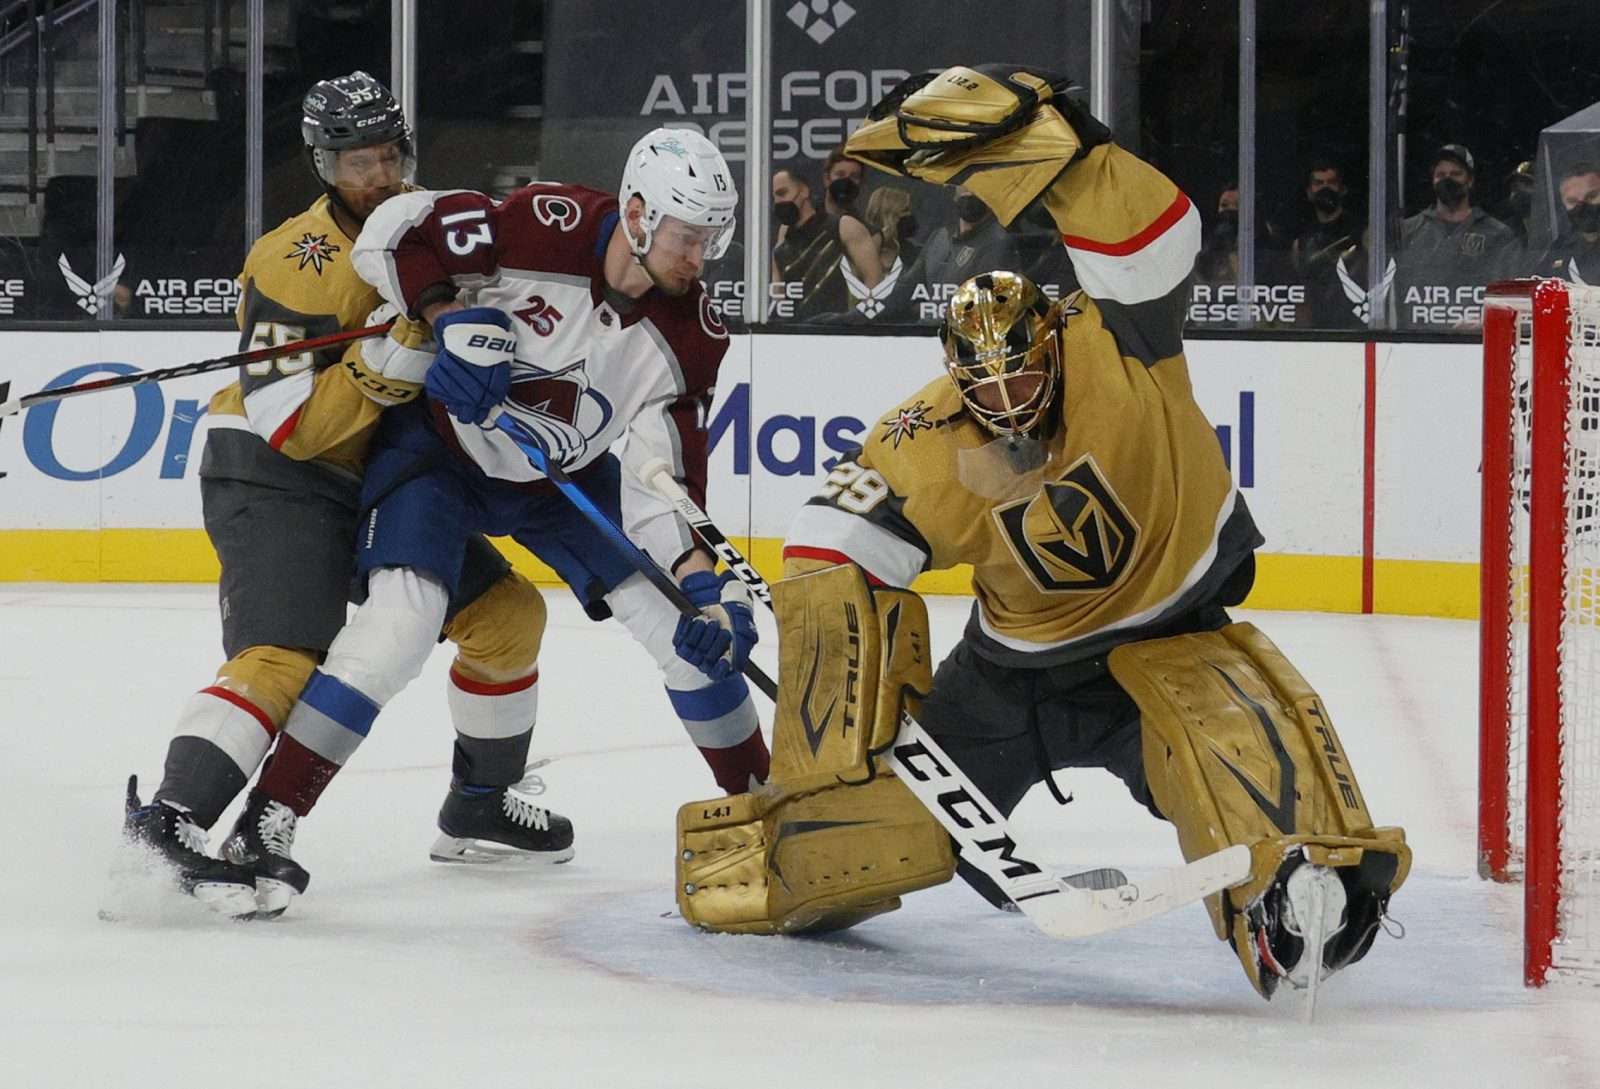 Marc-Andre Fleury makes a glove save